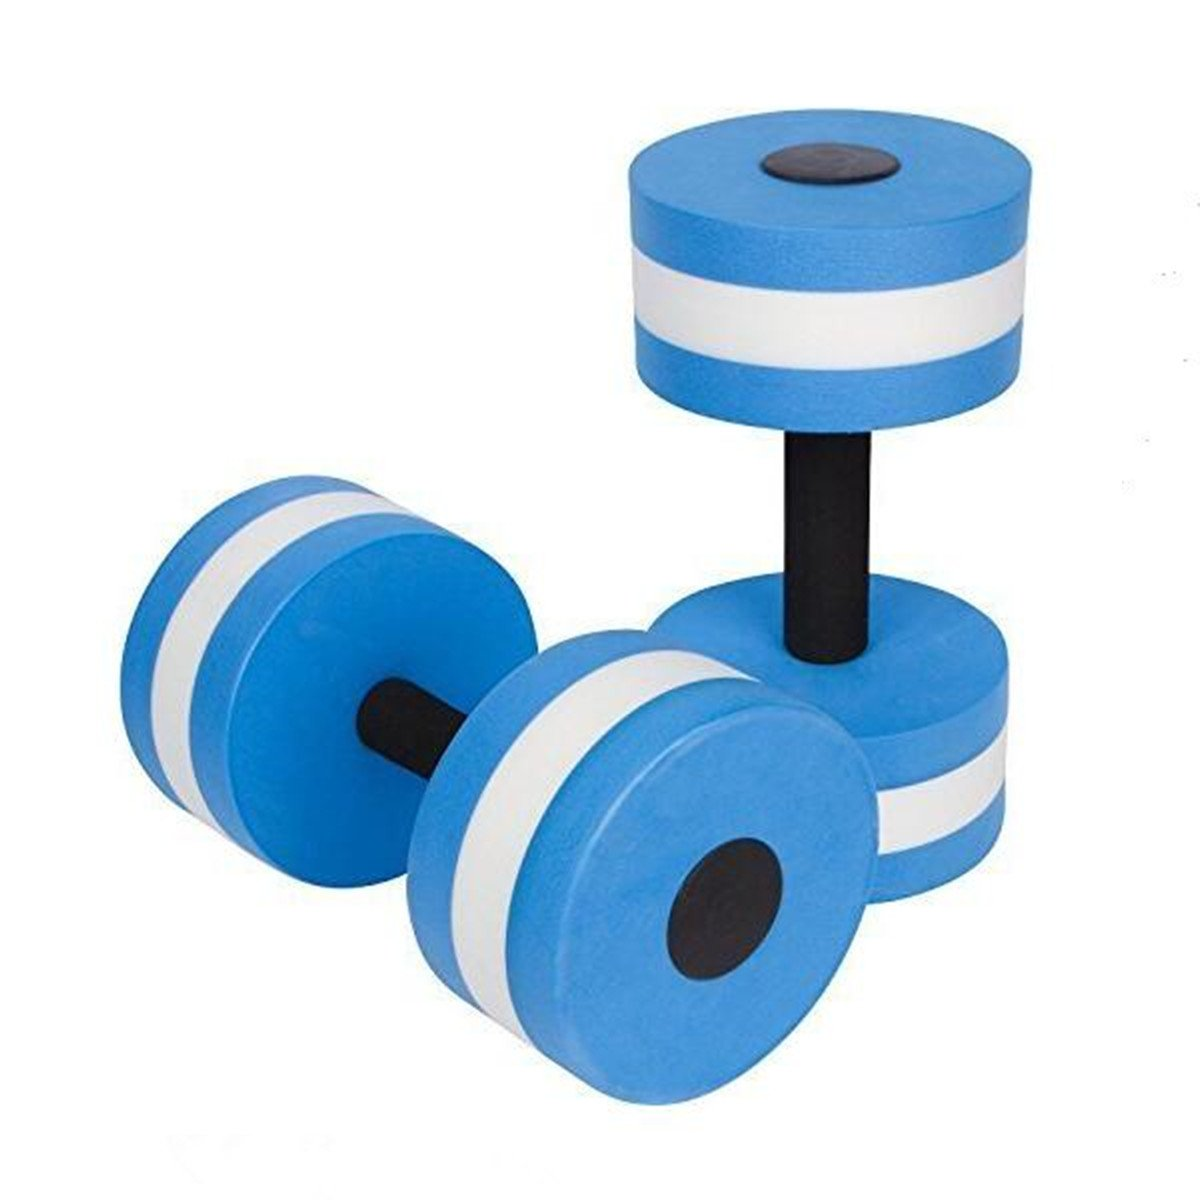 VERISA aqua dumbbell EVA Exercise Foam Dumbbells for Water Aerobics Fitness and Pool Exercises - 1 Pair - 3 Colors Available (BLUE)